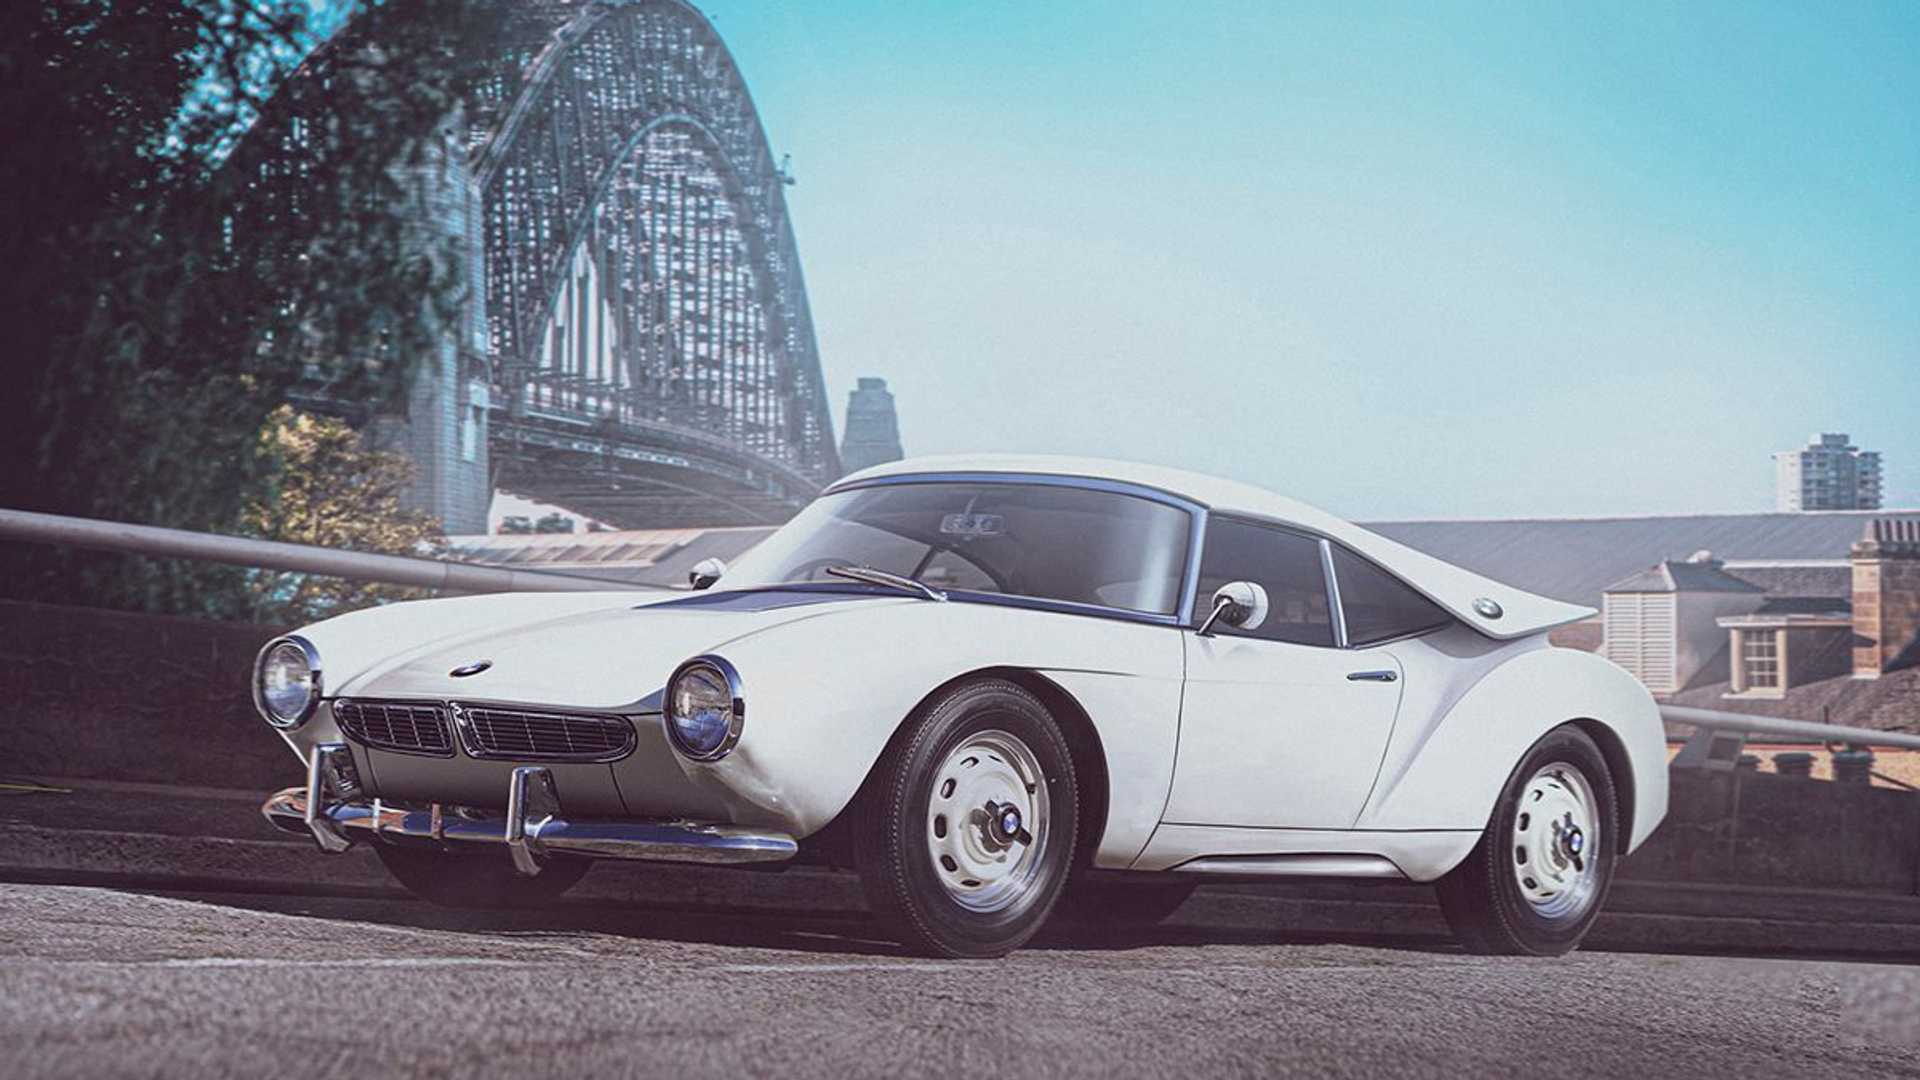 Check out what 7 EVs would look like if they were designed in the 1960s